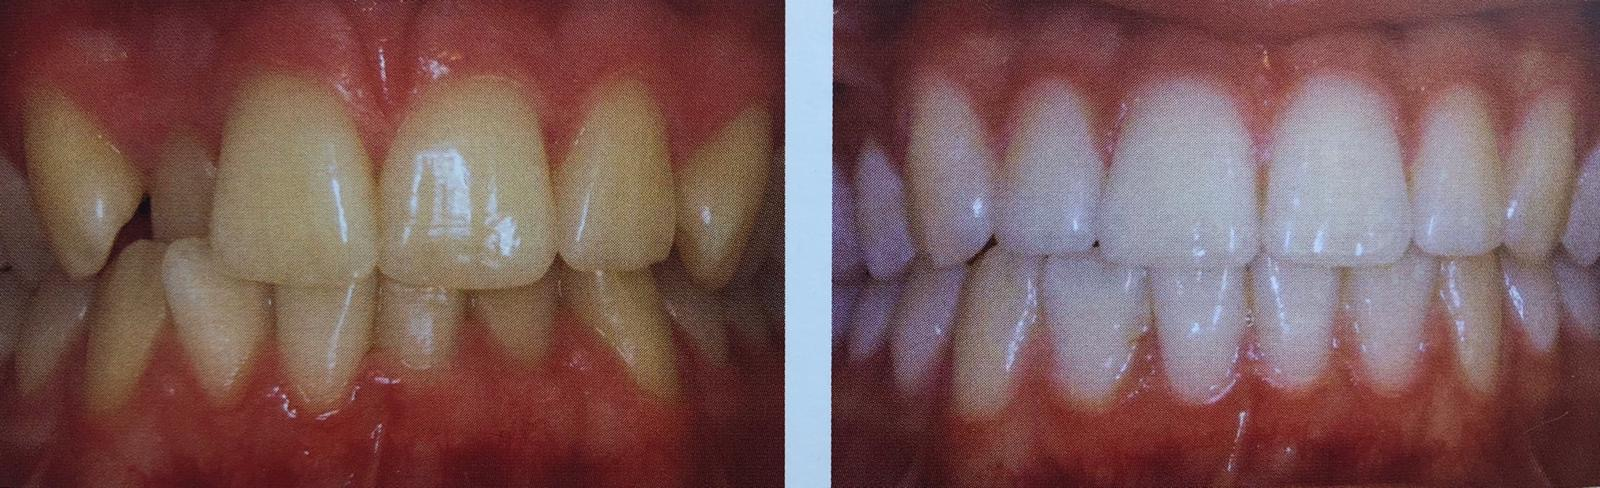 Smile Makeover Tooth Whitening